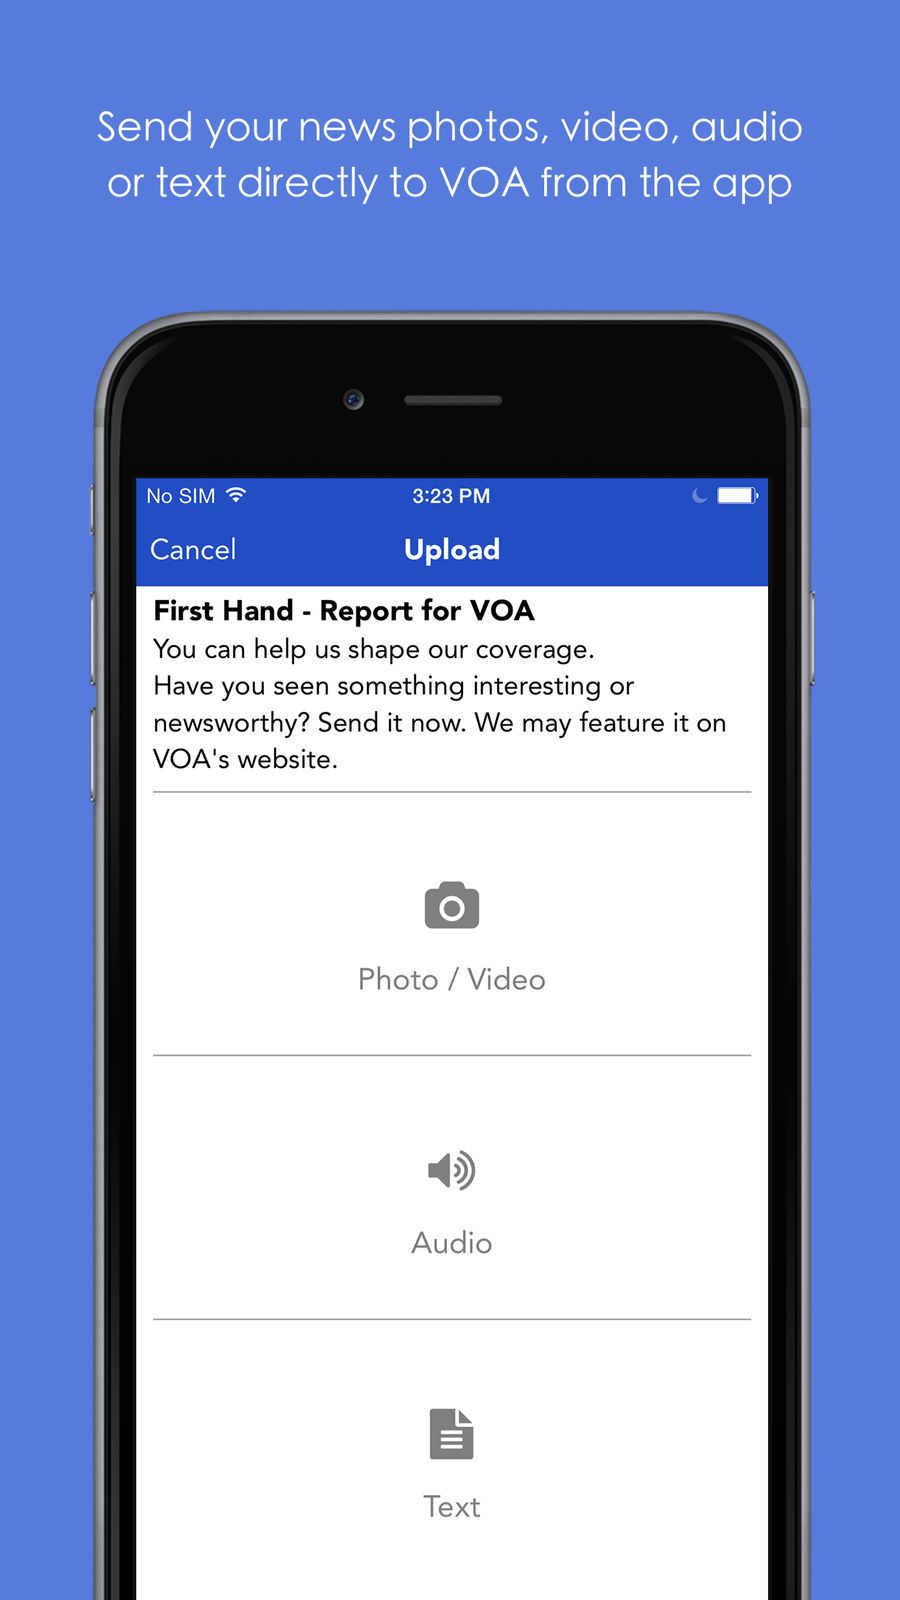 VOA appsappappstoreios (With images) Top iphone